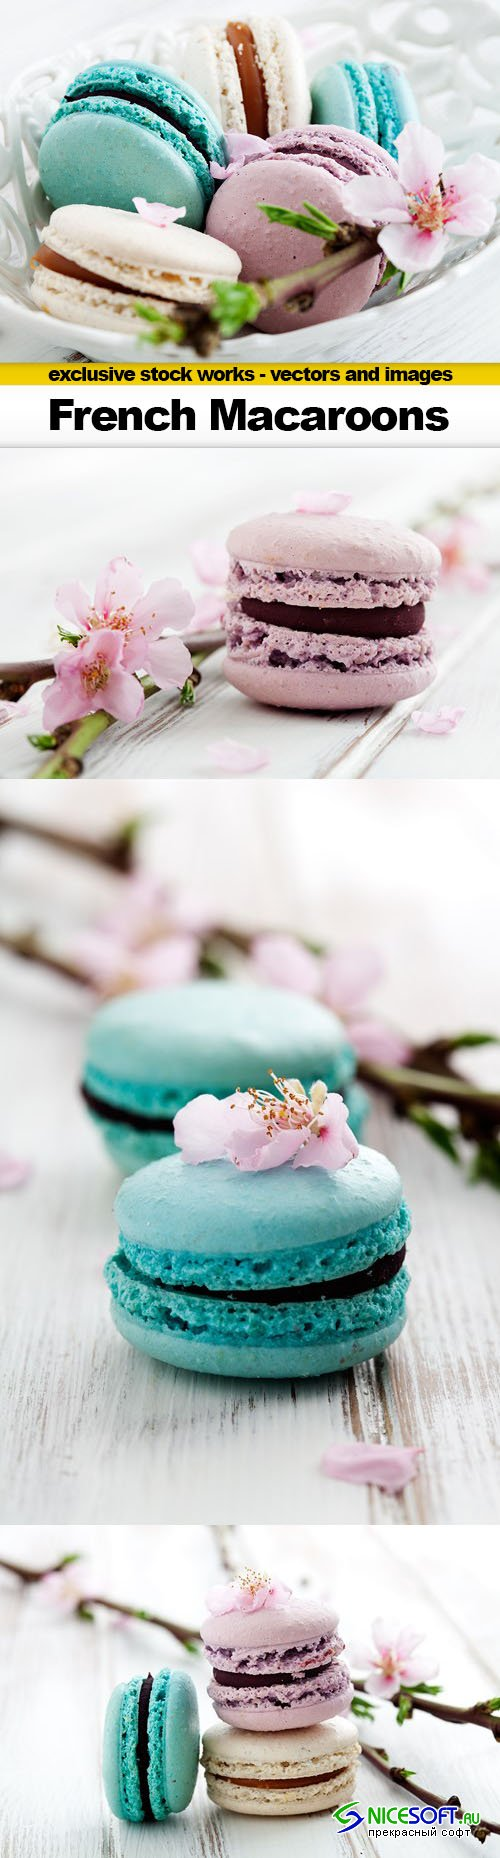 French Macaroons in Pink, Turquoise and White - 4x UHQ JPEG